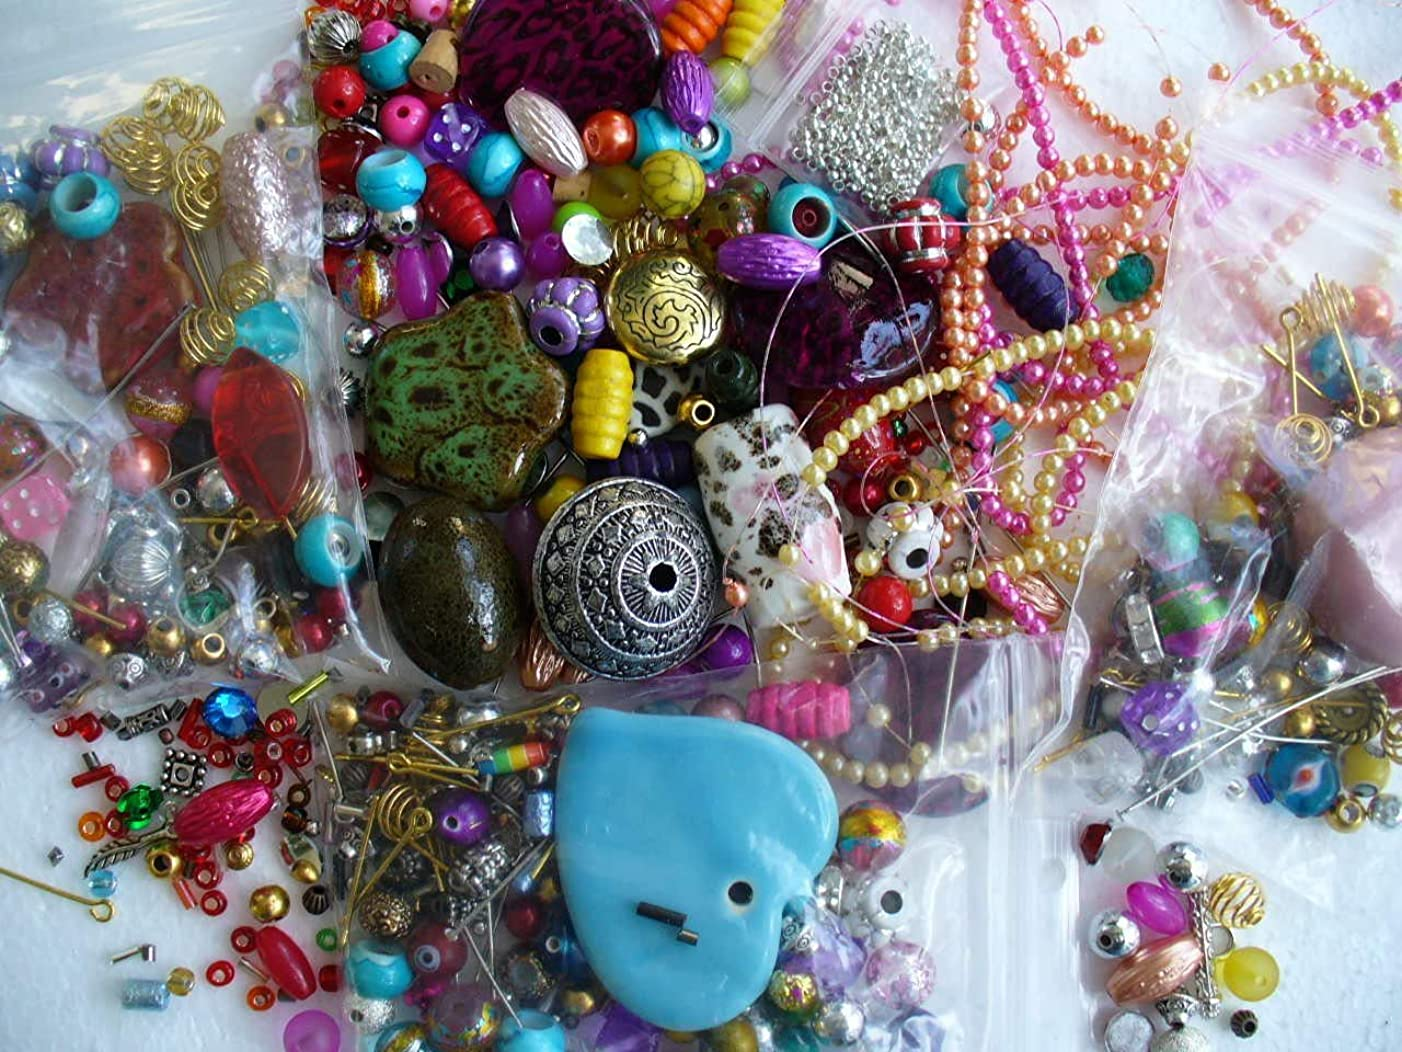 UnCommon Artistry's Large Assortment of Beads and Findings. Grab Bag of Beads for Crafts. 1/4 Pound